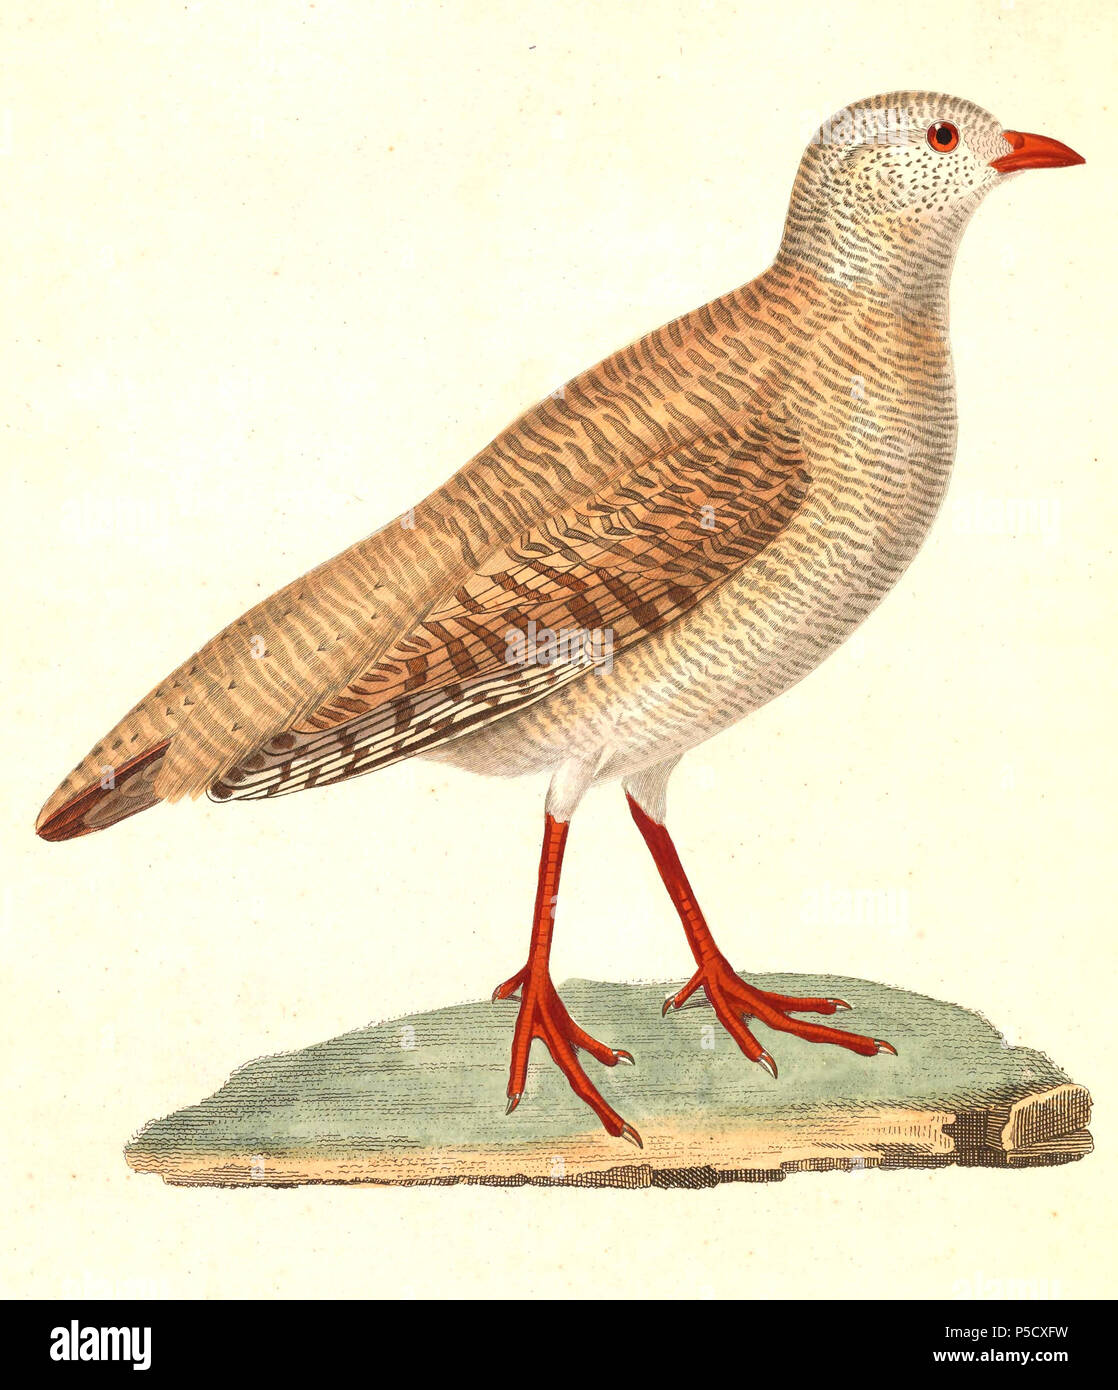 N/A.  English: « Perdix heyi » = Ammoperdix heyi (Sand Partridge) - female Français: « Perdix heyi » = Ammoperdix heyi (Perdrix de Hey) - femelle . 1838.   Nicolas Huet  (1770–1830)    Alternative names Nicolas, II Huet; Nicolas Huet The Younger; Nicholas Huet II; Nicolas The Younger Huet  Description French painter, illustrator and engraver  Date of birth/death 1770 26 December 1830  Location of birth Paris  Authority control  : Q3340421 VIAF:95590486 ISNI:0000 0000 7064 7628 ULAN:500117124 GND:138988412      Jean Gabriel Prêtre  (1768–1849)    Description Swiss artist  Date of birth/death 20 - Stock Image